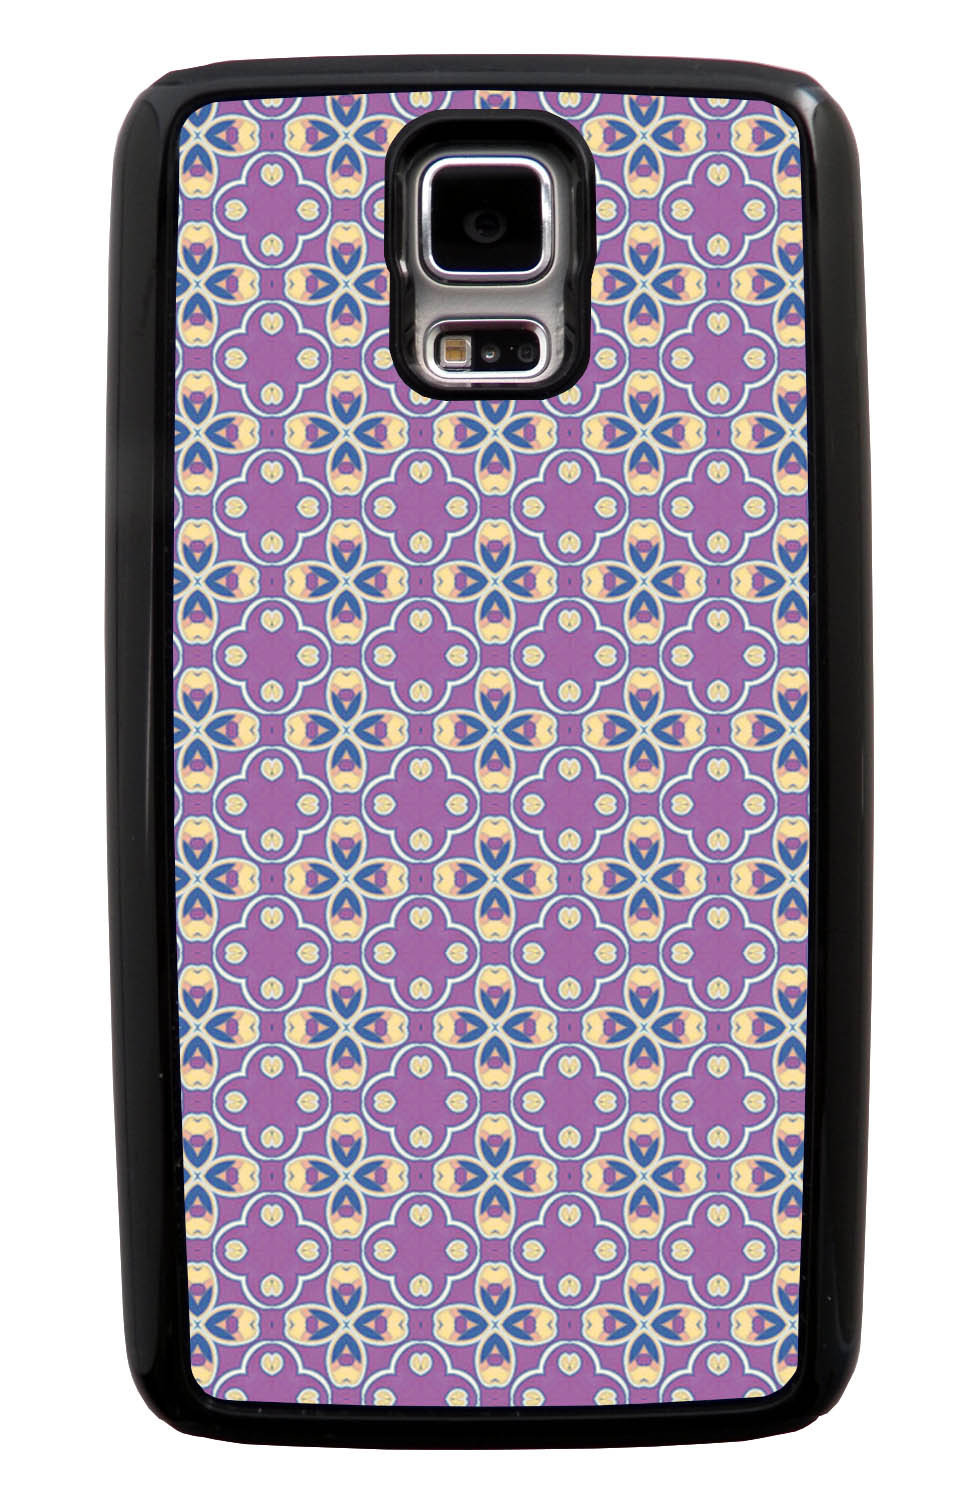 Samsung Galaxy S5 / SV Abstract Case - Purple and Yellow Tip - Flower Petal Like - Black Tough Hybrid Case